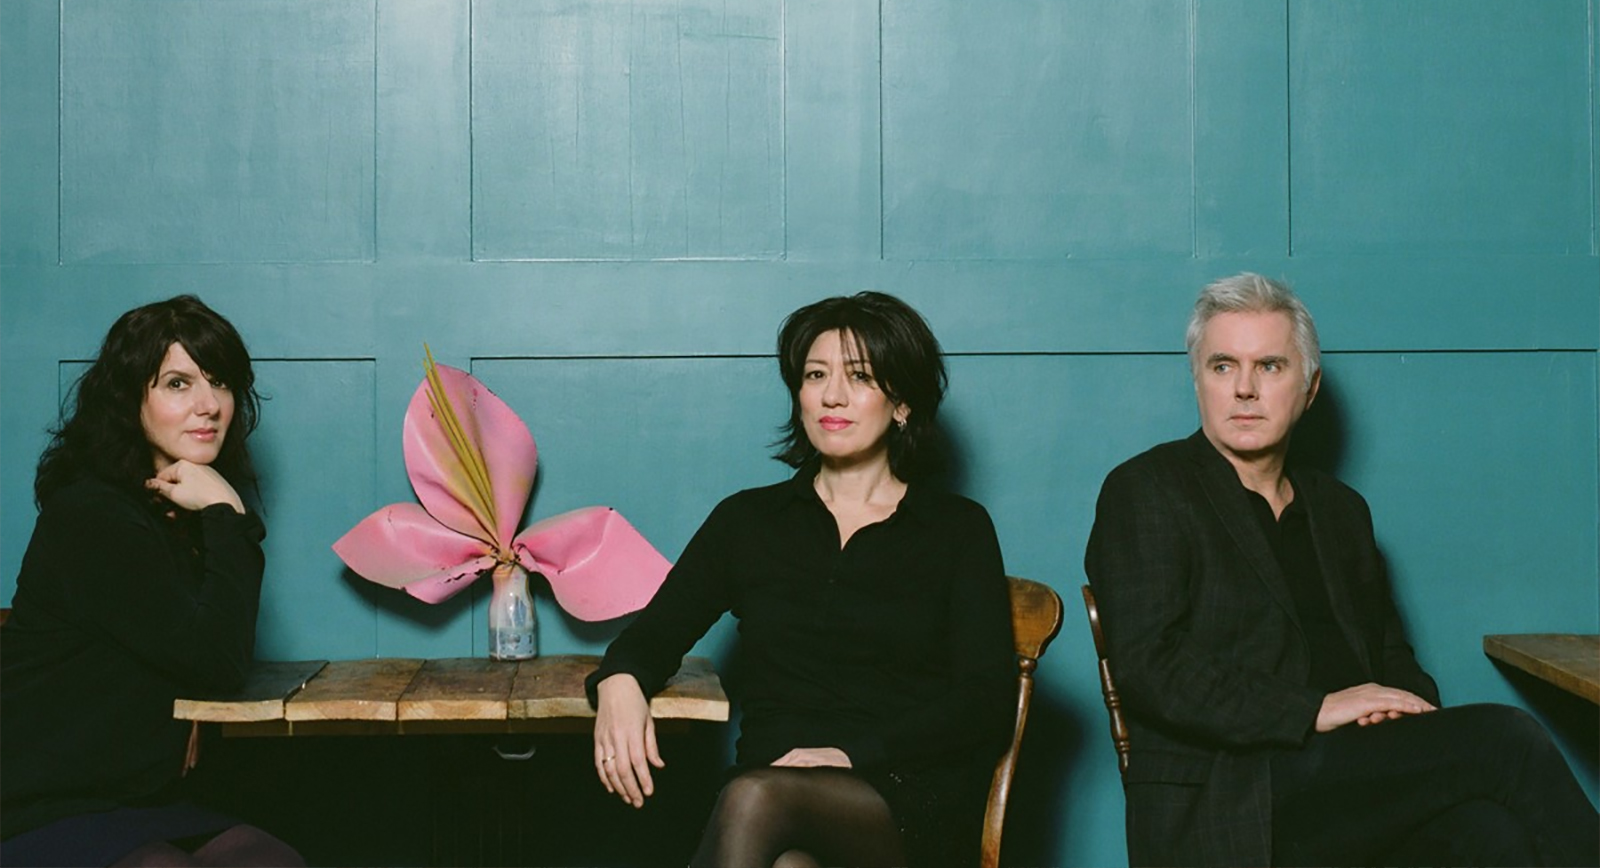 Lush-2016-Tour-Concert-Tickets-Dates-EP-Information-FI